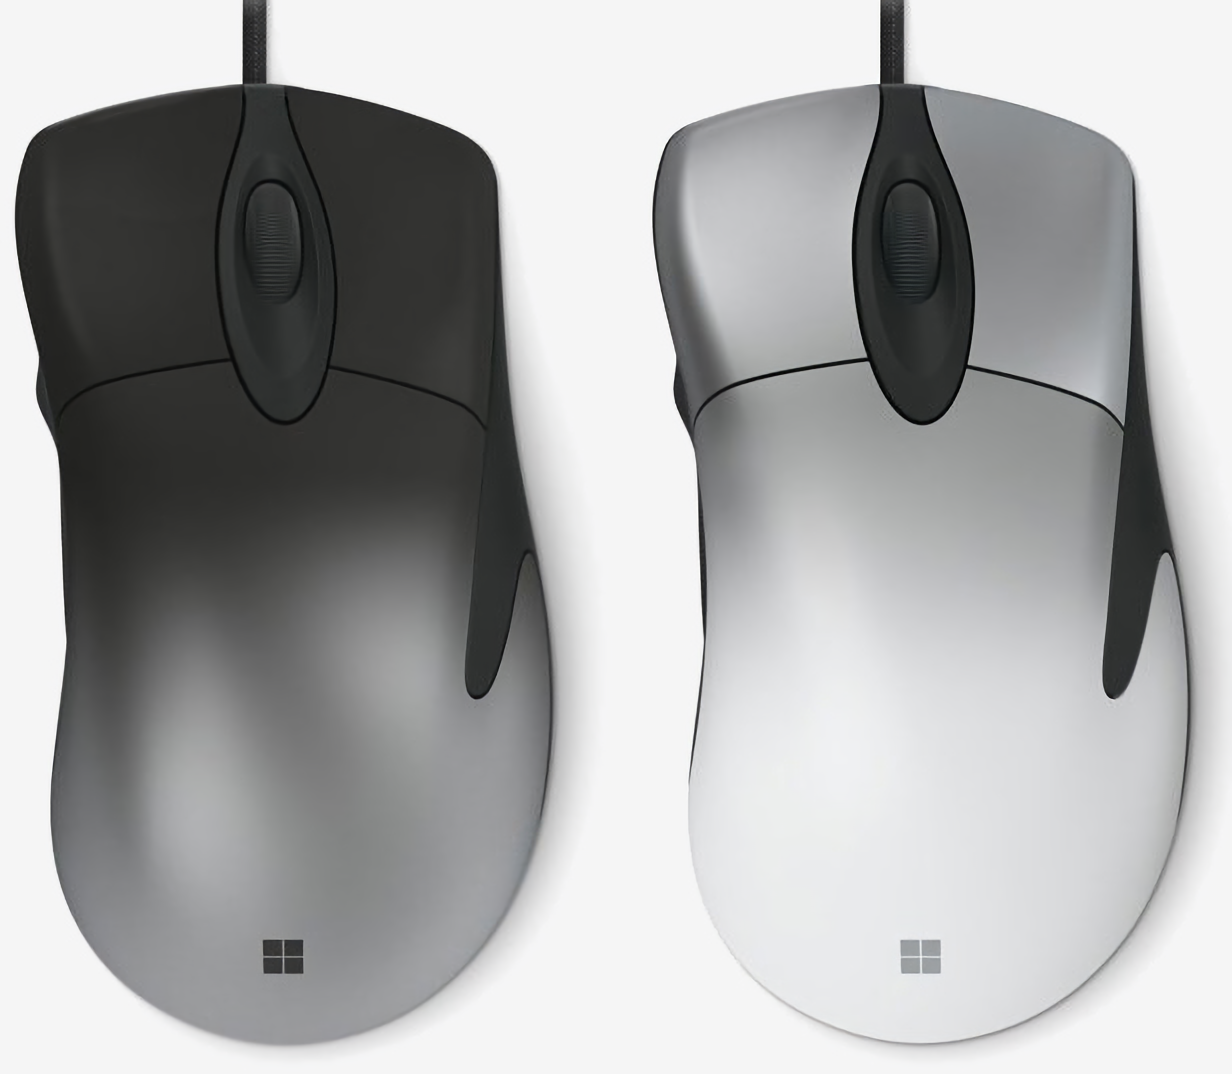 Microsoft is bringing the Pro IntelliMouse to gamers worldwide